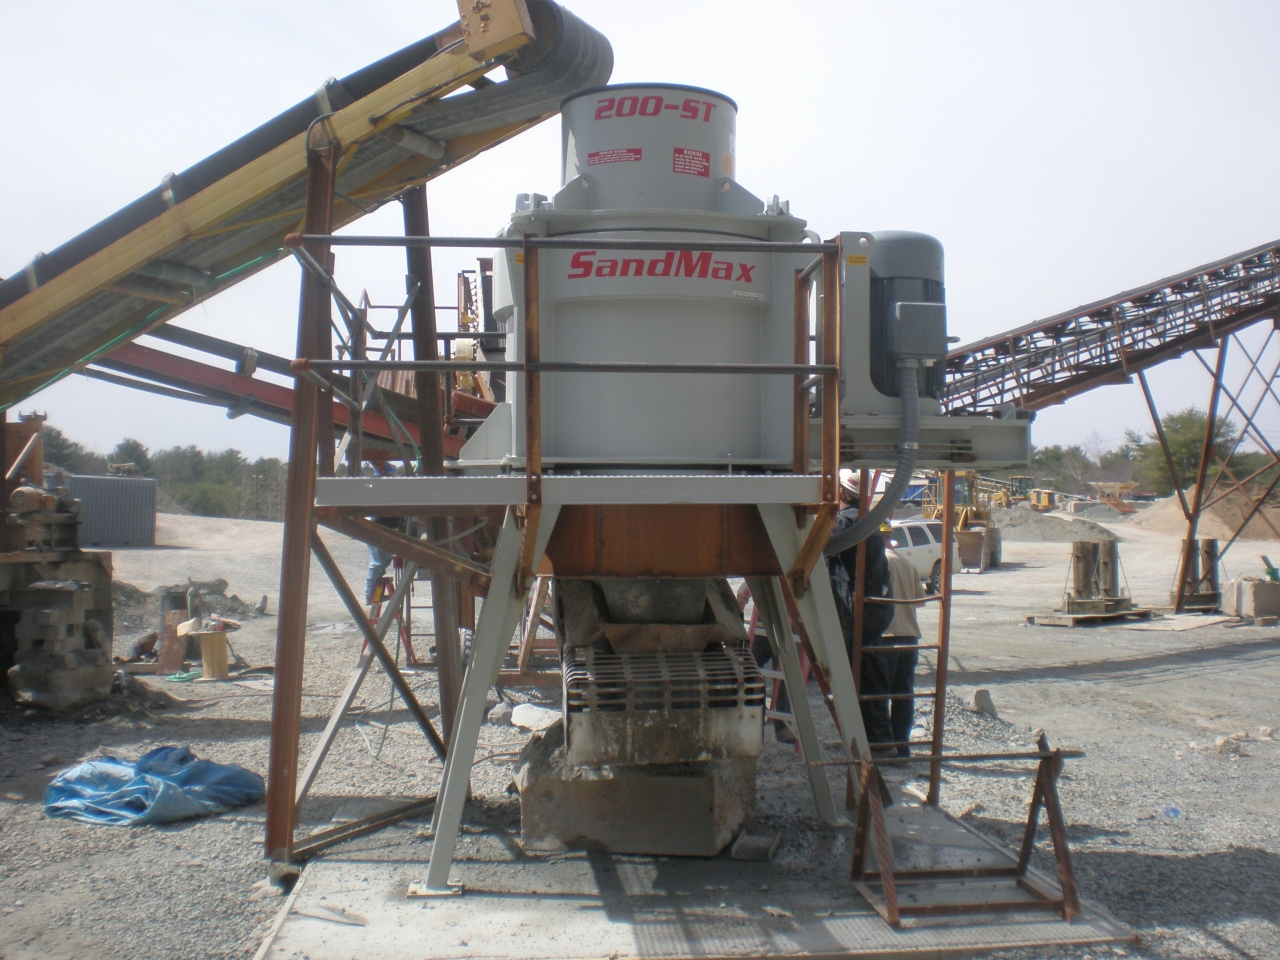 Material Handling Crushing Equipment - Sandmax 200-ST Crusher